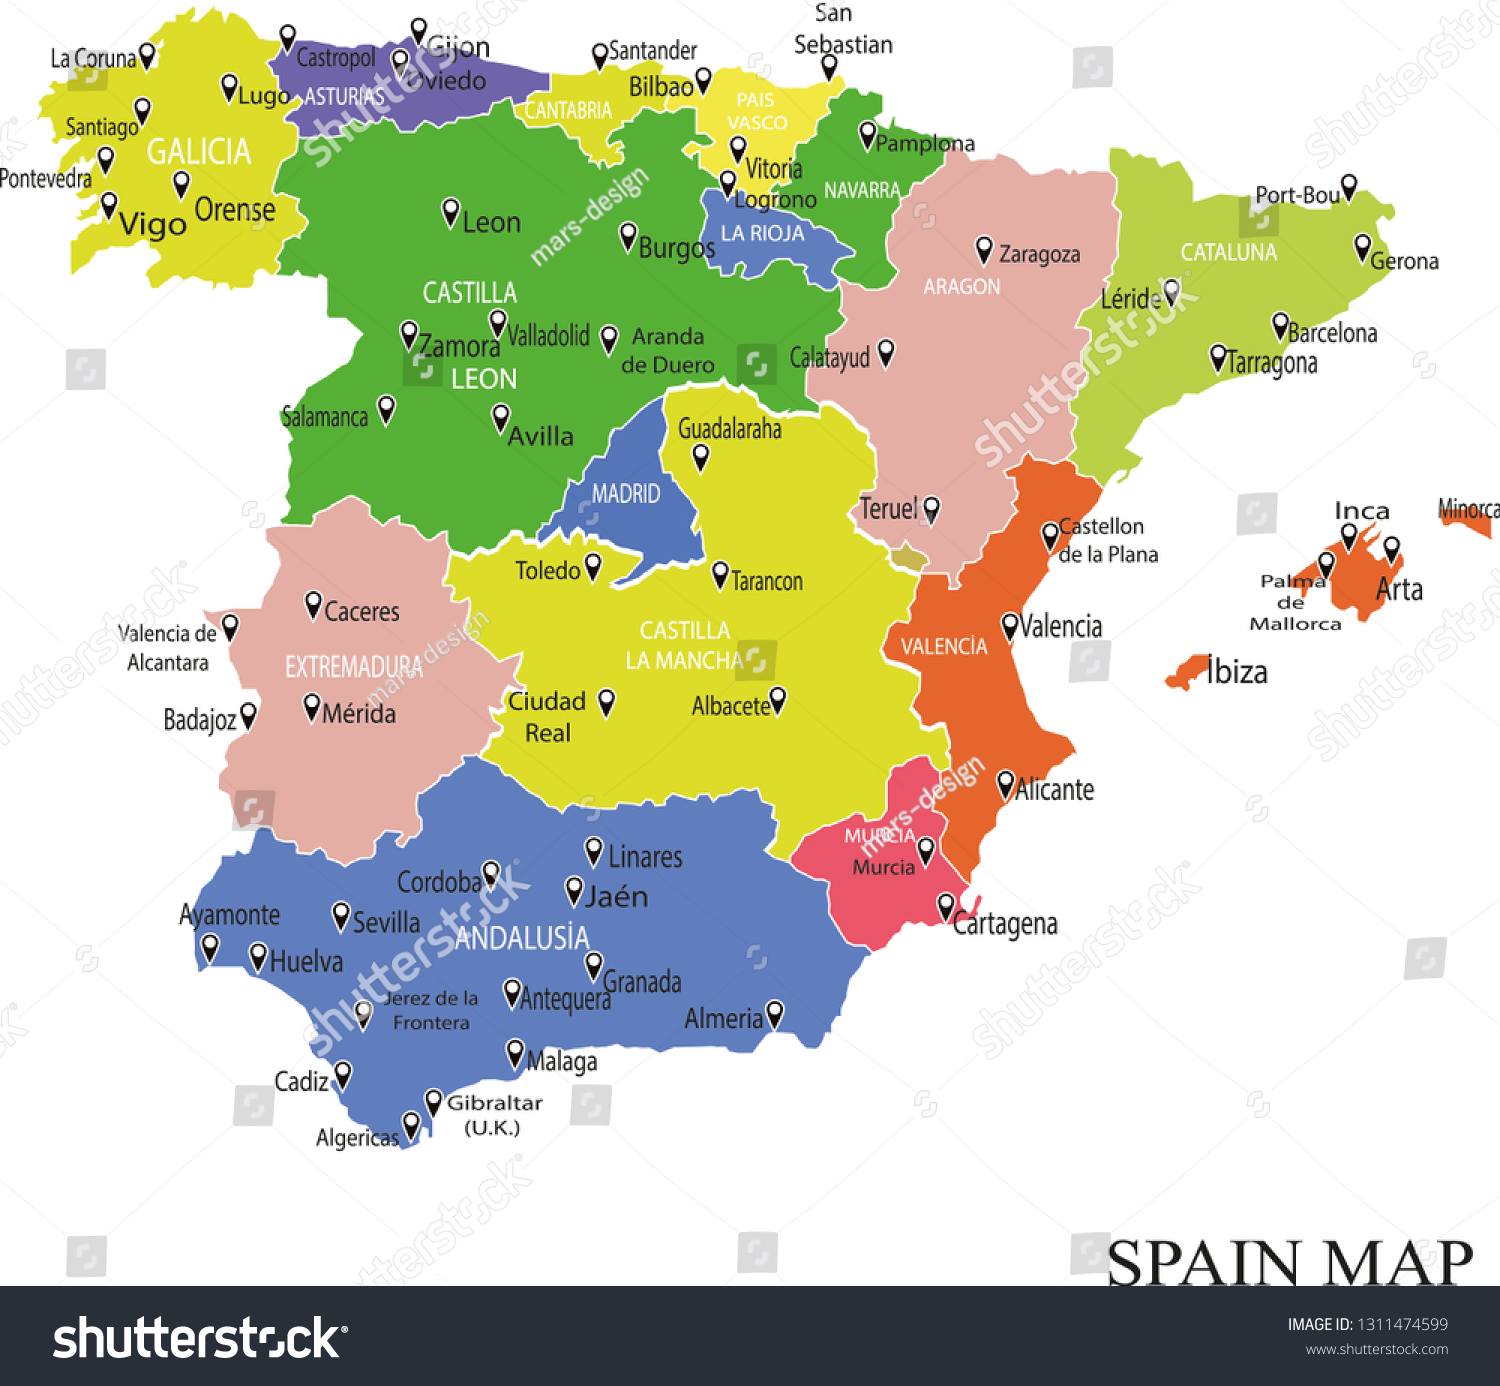 Map Of Spain Showing Regions.Spain Map Drawing Map Spain Regions Stock Vector Royalty Free